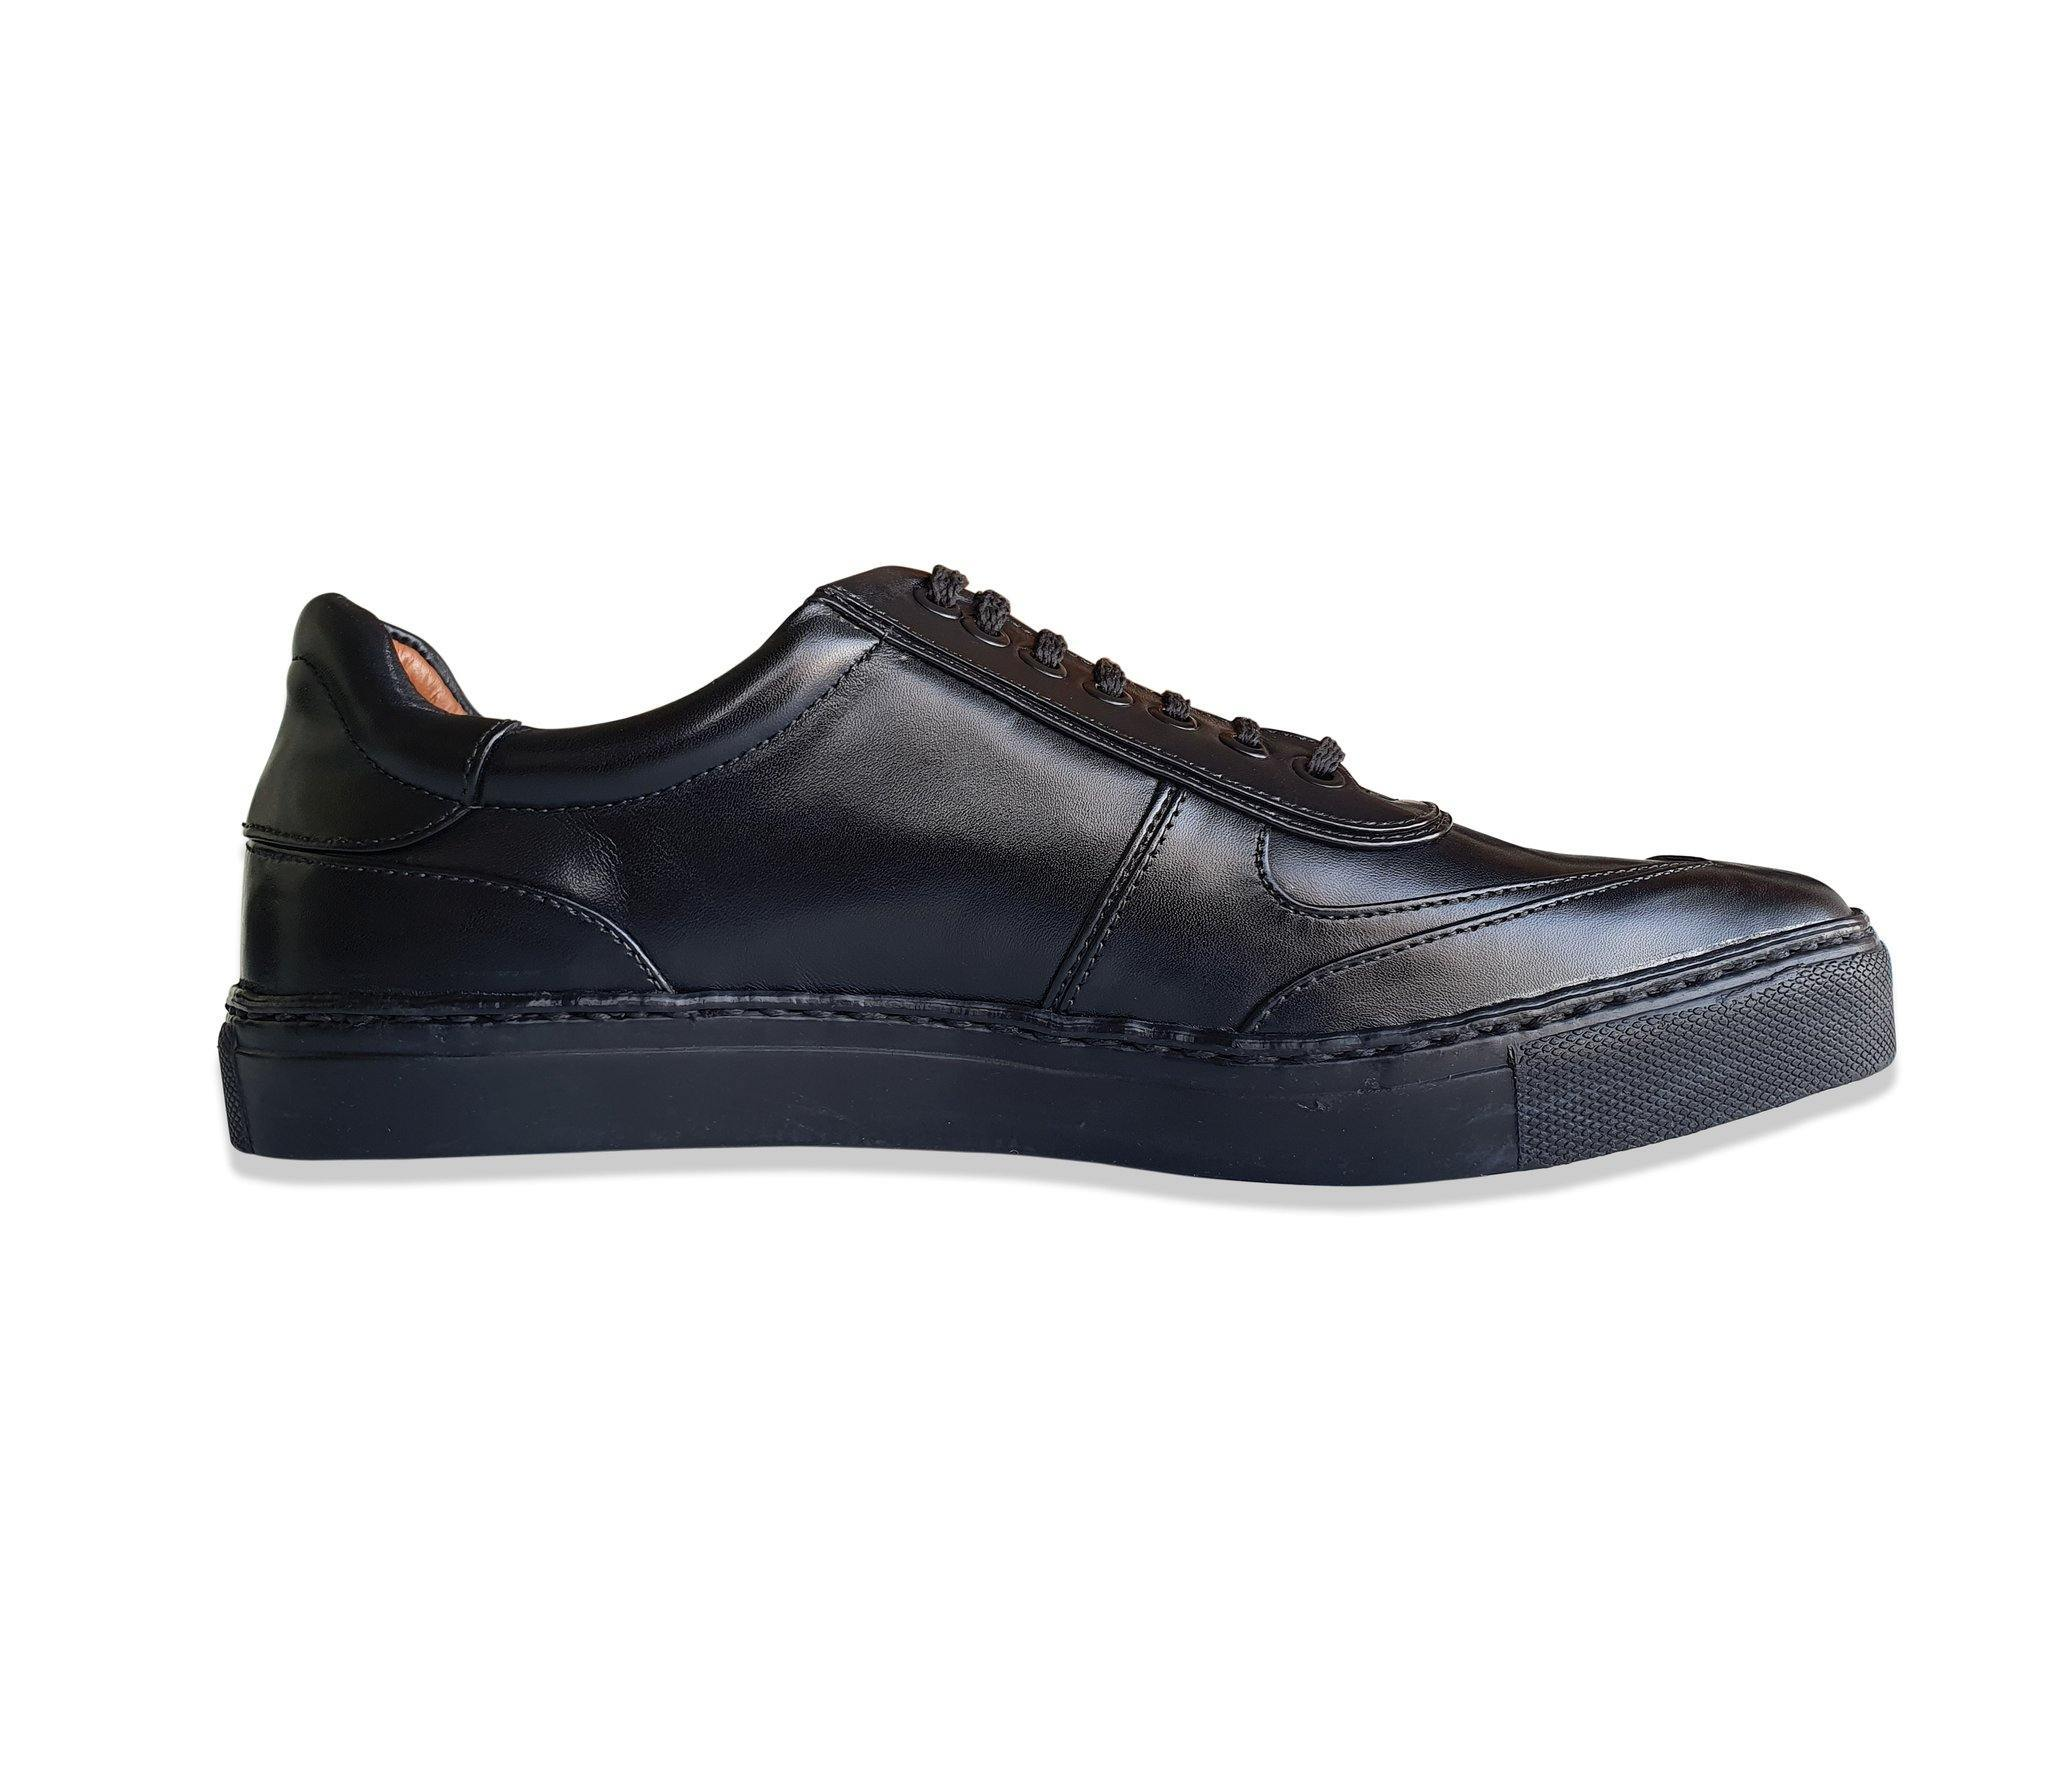 All-Rounder -  Sneakers in Black - TLC - The Leather Crafts